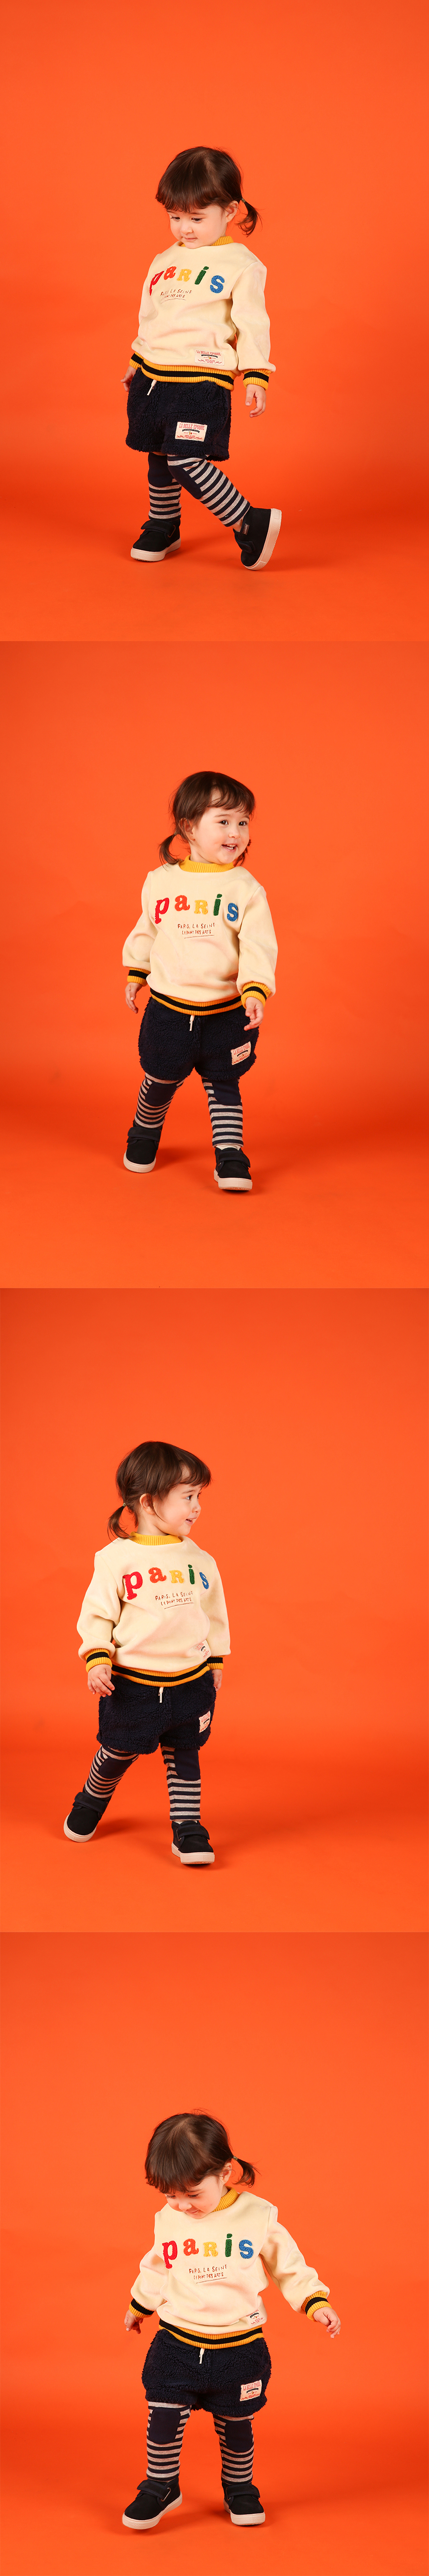 Baby dumble short pants leggings 상세 이미지